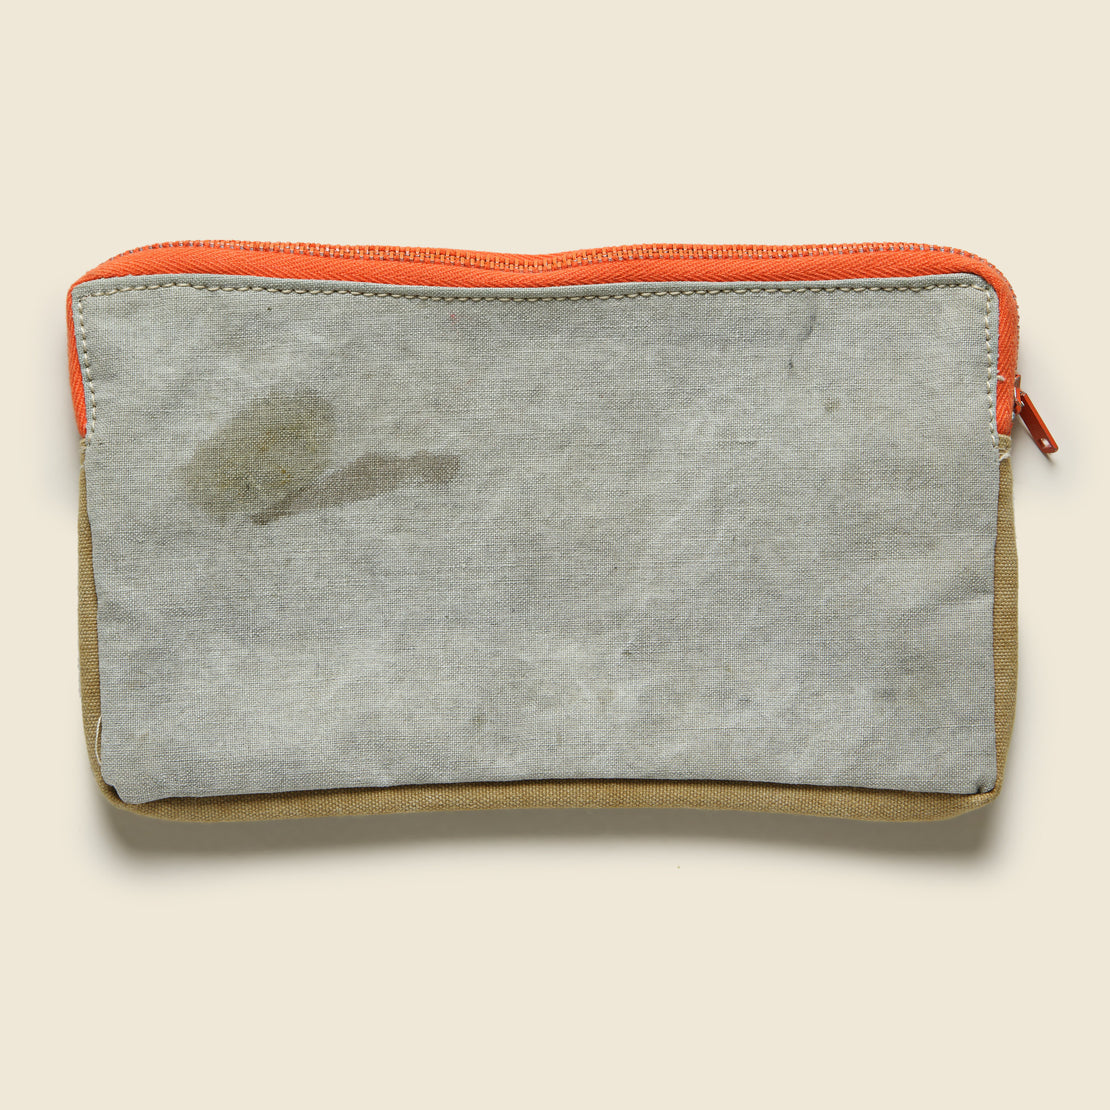 Zipper Pouch - Orange/Brown/Tan - Vintage - STAG Provisions - Accessories - Misc. Vintage